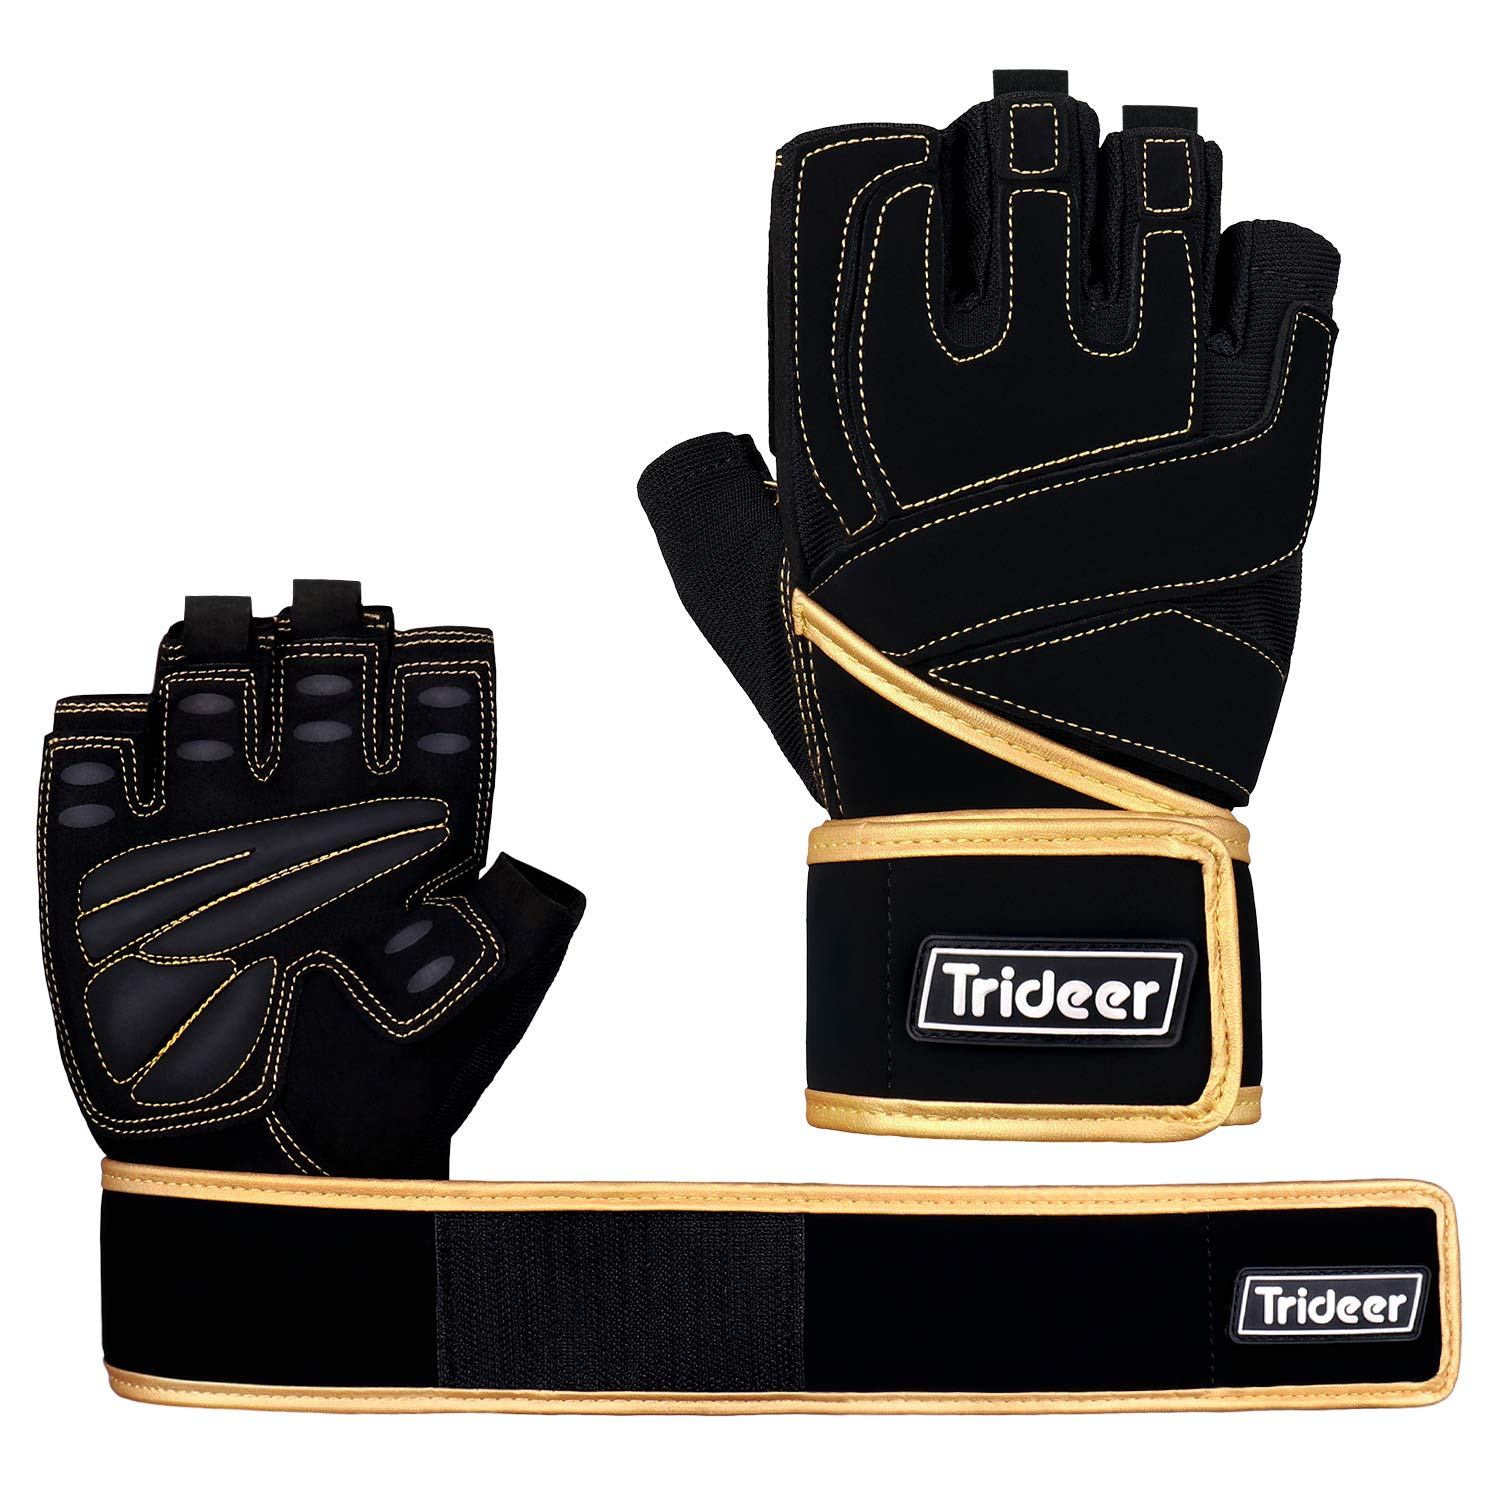 Trideer Padded Weight Lifting Gloves, Gym Gloves, Workout Gloves, Rowing Gloves, Exercise Gloves for Weight Lifting, Fitness, Cross Training for Men & Women by Trideer